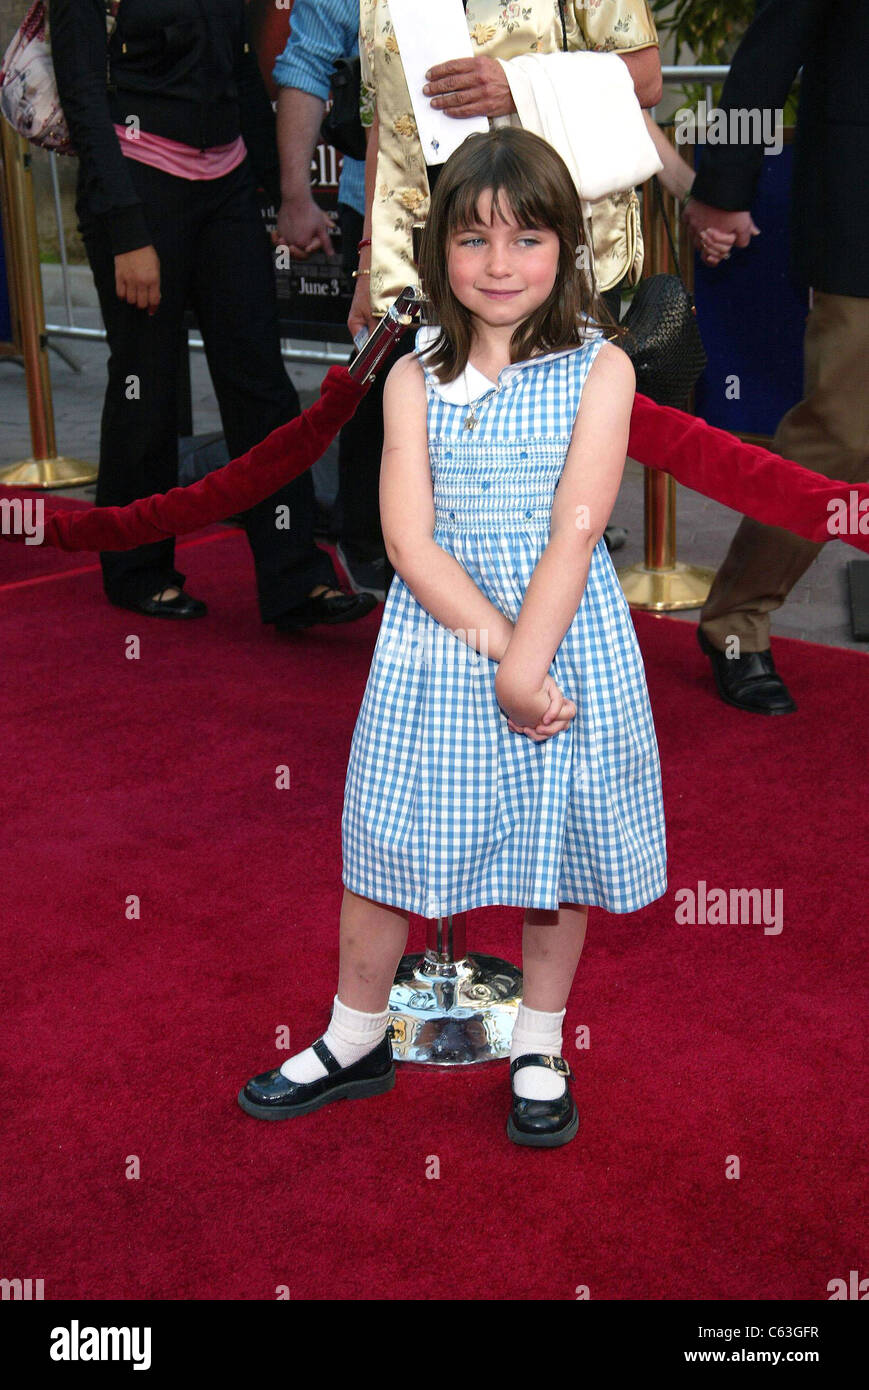 Ariel Waller at arrivals for Cinderella Man Premiere, Universal Studios Cinema at Universal CityWalk, Los Angeles, - Stock Image